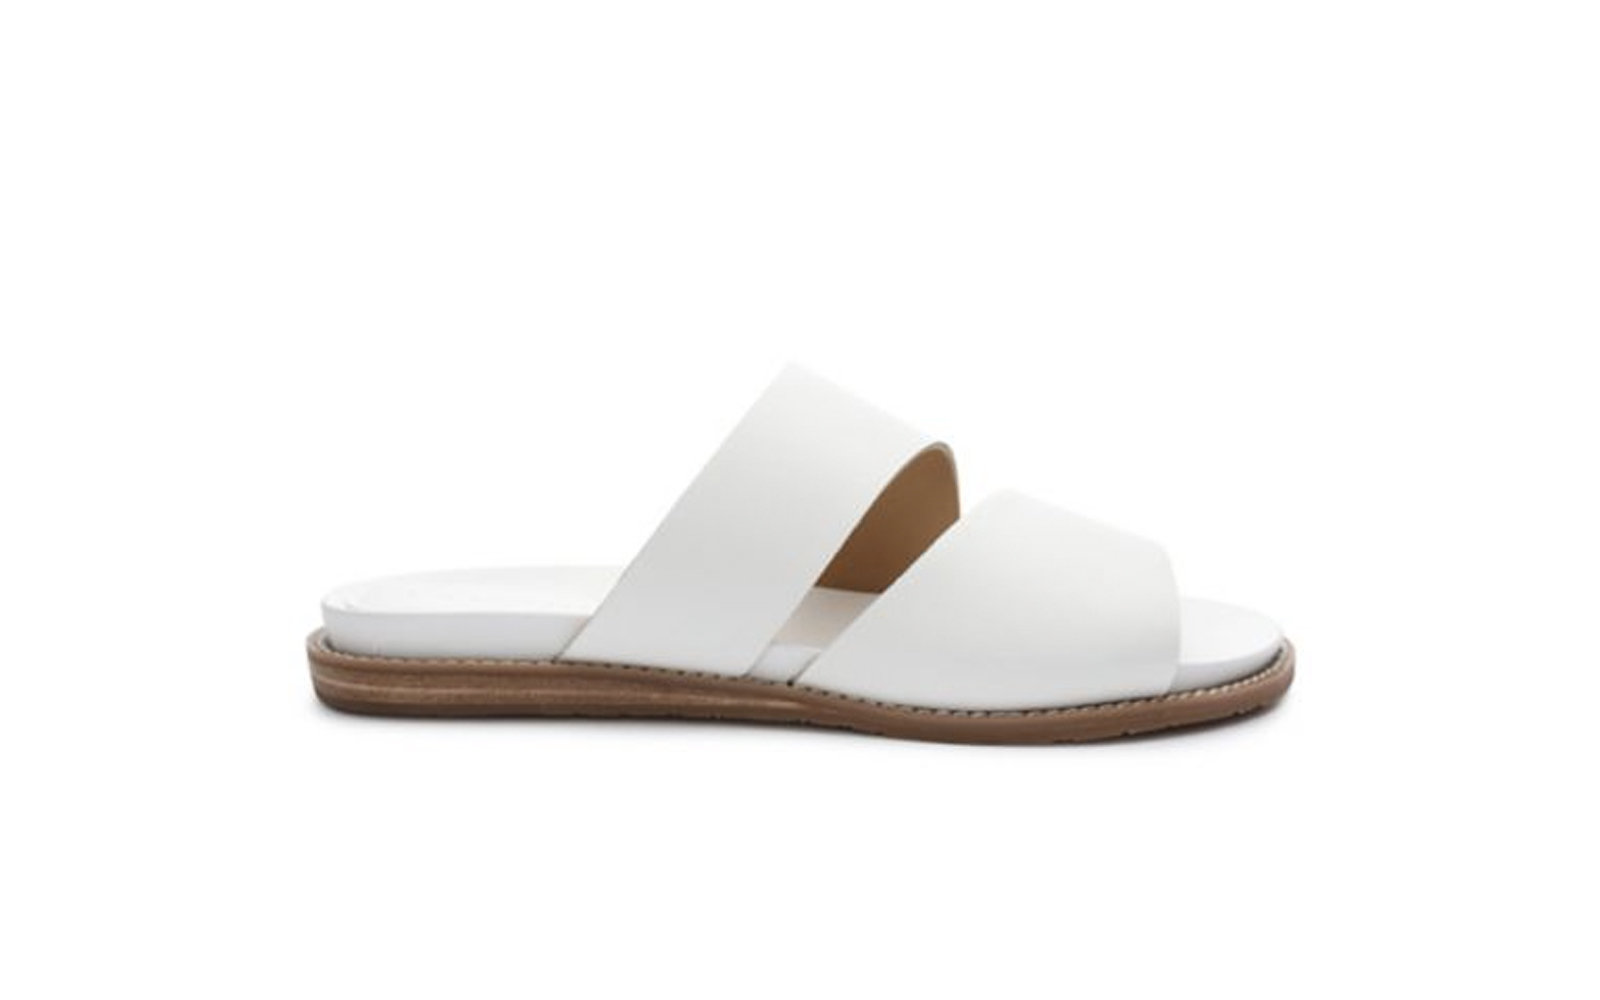 Tahari 'Mercer' Leather Slides